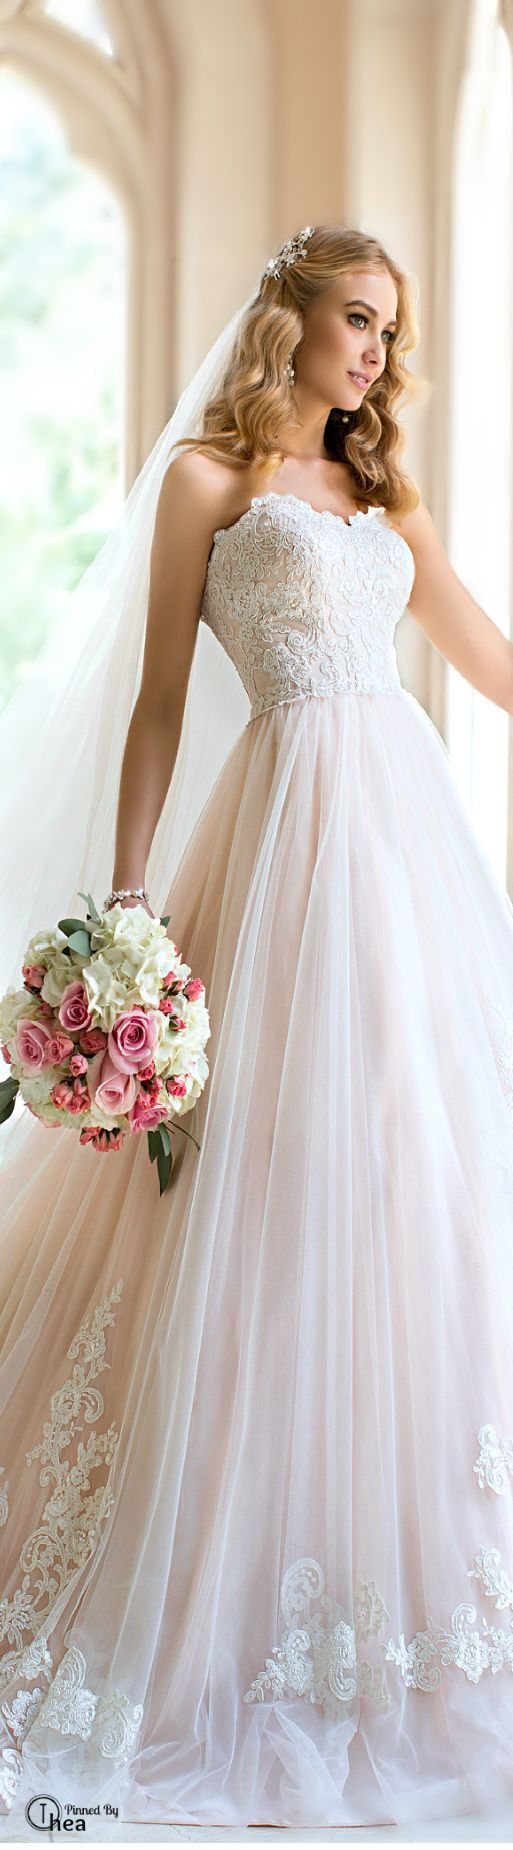 classically elegant. What more can a bride ask for